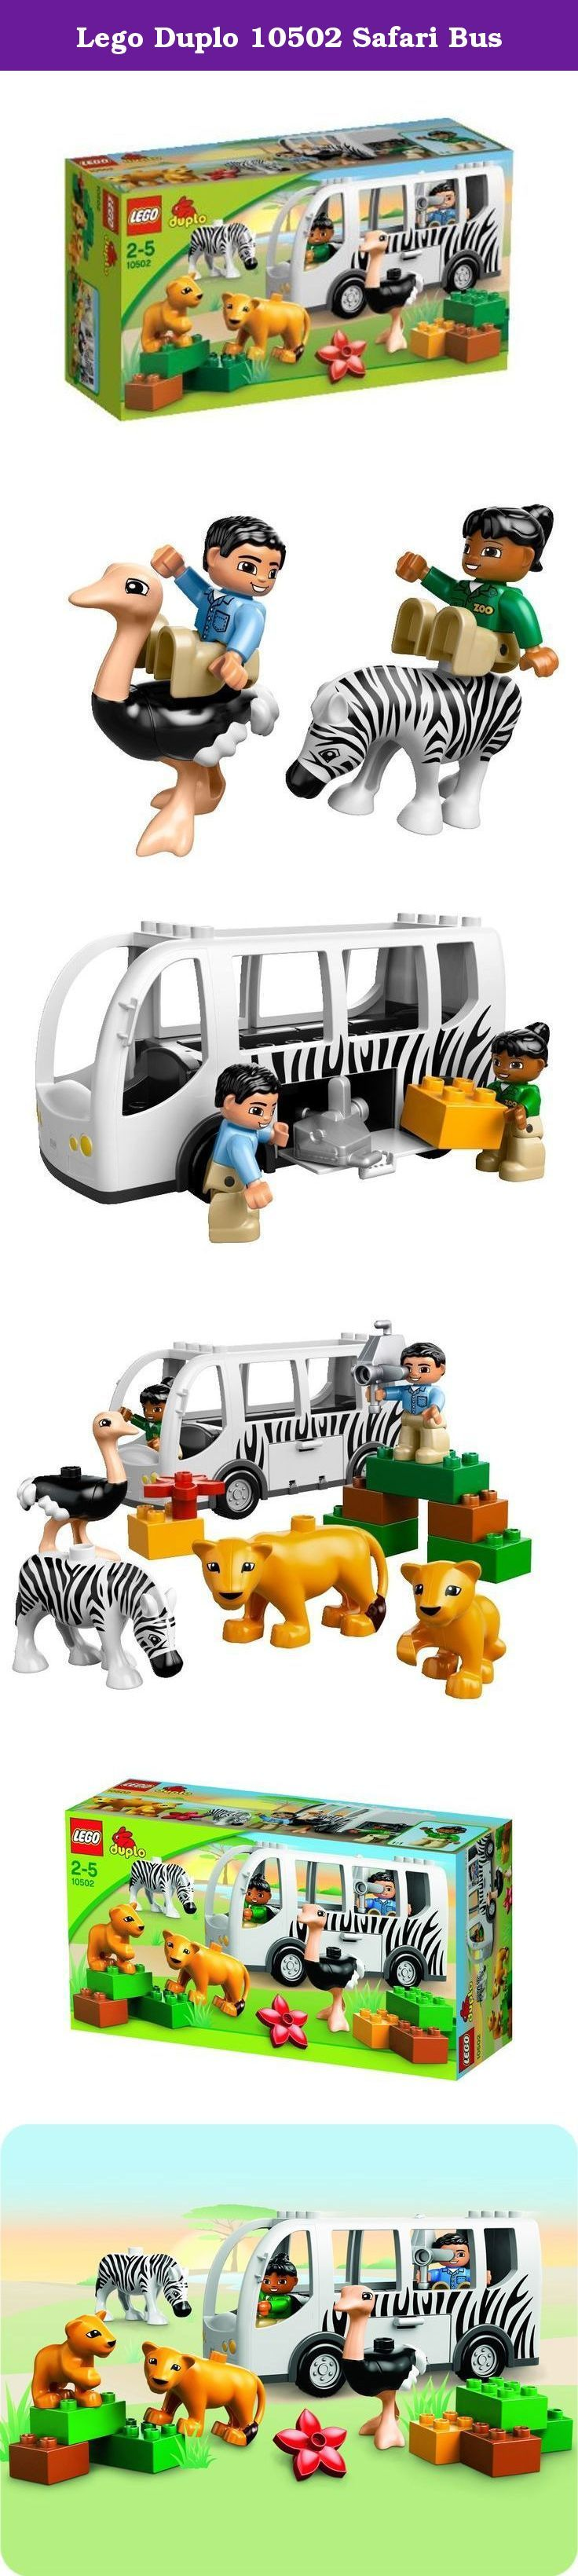 Lego Duplo 10502 Safari Bus. LEGO Duplo 10502 Zoo Bus Safari Animals Ostrich Zebra Lioness Lion New In Box Brand New In Box. All of our items are officially distributed by LEGO Korea. 100% Authentic Guaranteed.